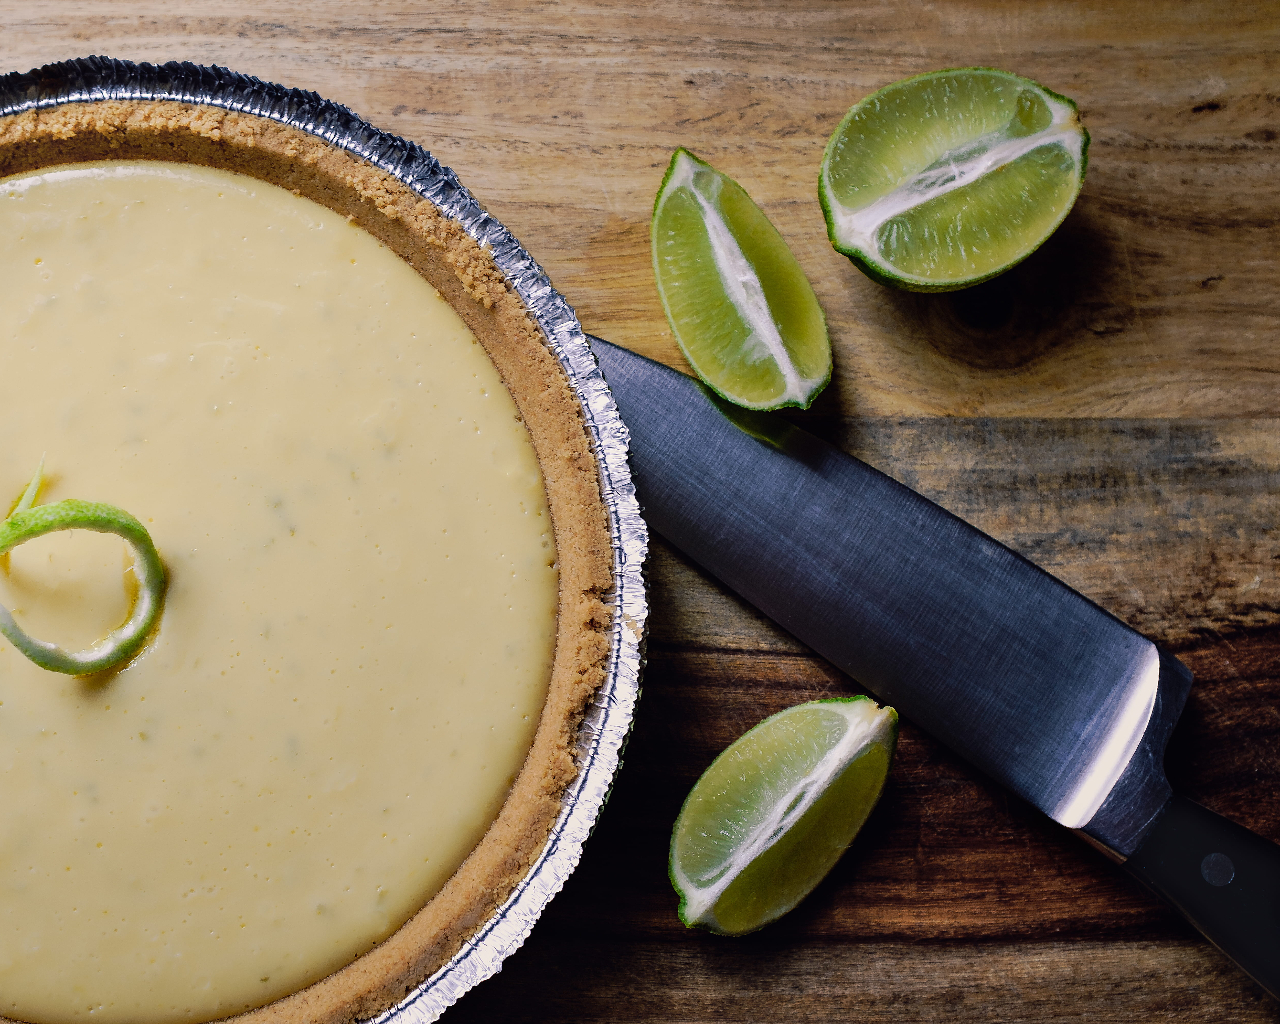 Easy Icebox Key Lime Pie No Bake Recipe (Gingersnap Crust)